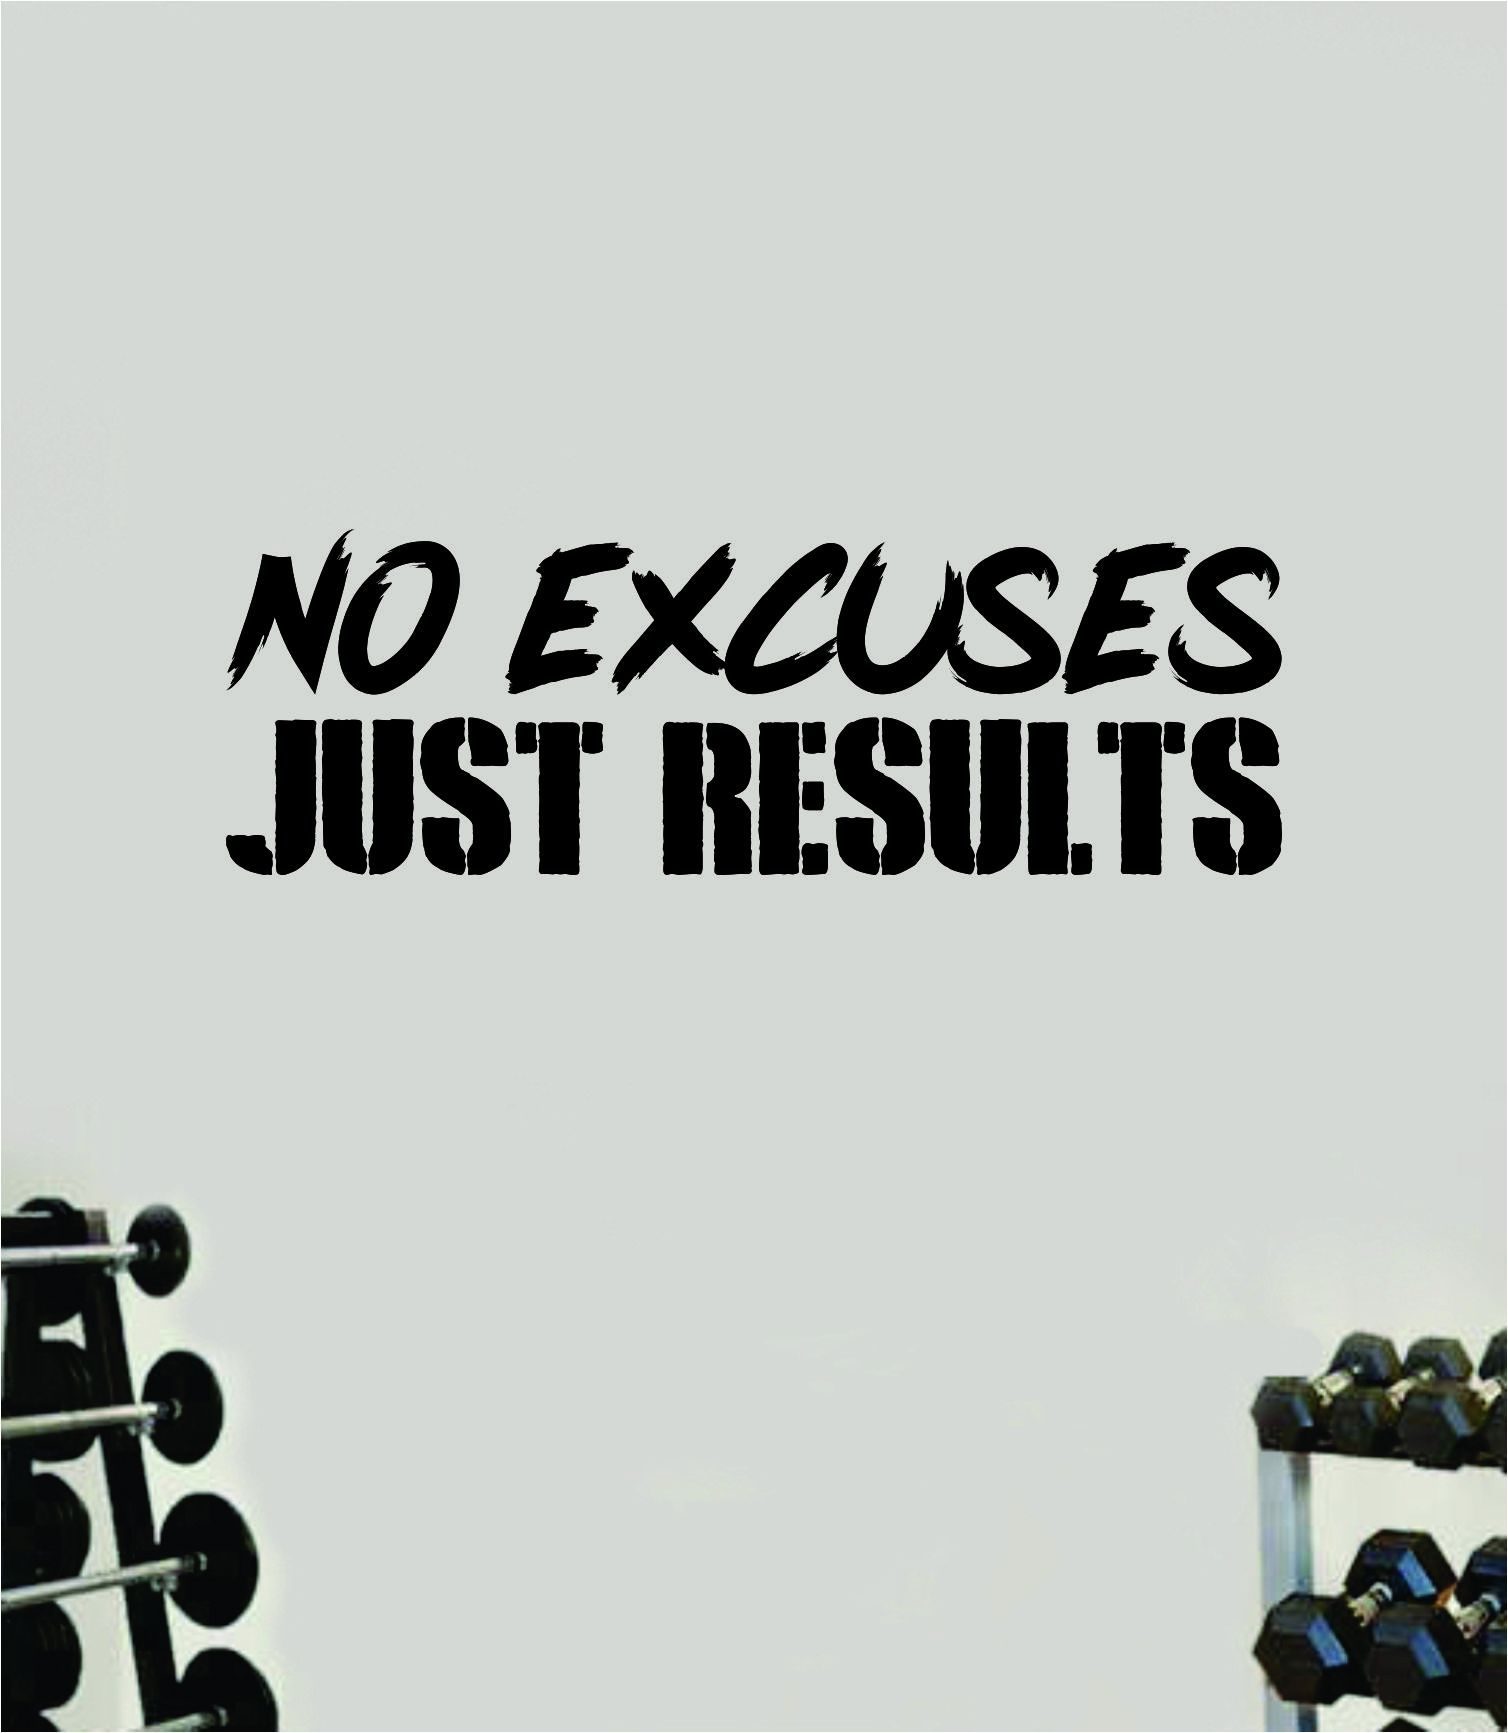 No Excuses Just Results Gym Fitness Wall Decal Home Decor Bedroom Room Vinyl Sticker Teen Art Quote Beast Lift Train Inspirational Motivational Health Girls Exercise - gold